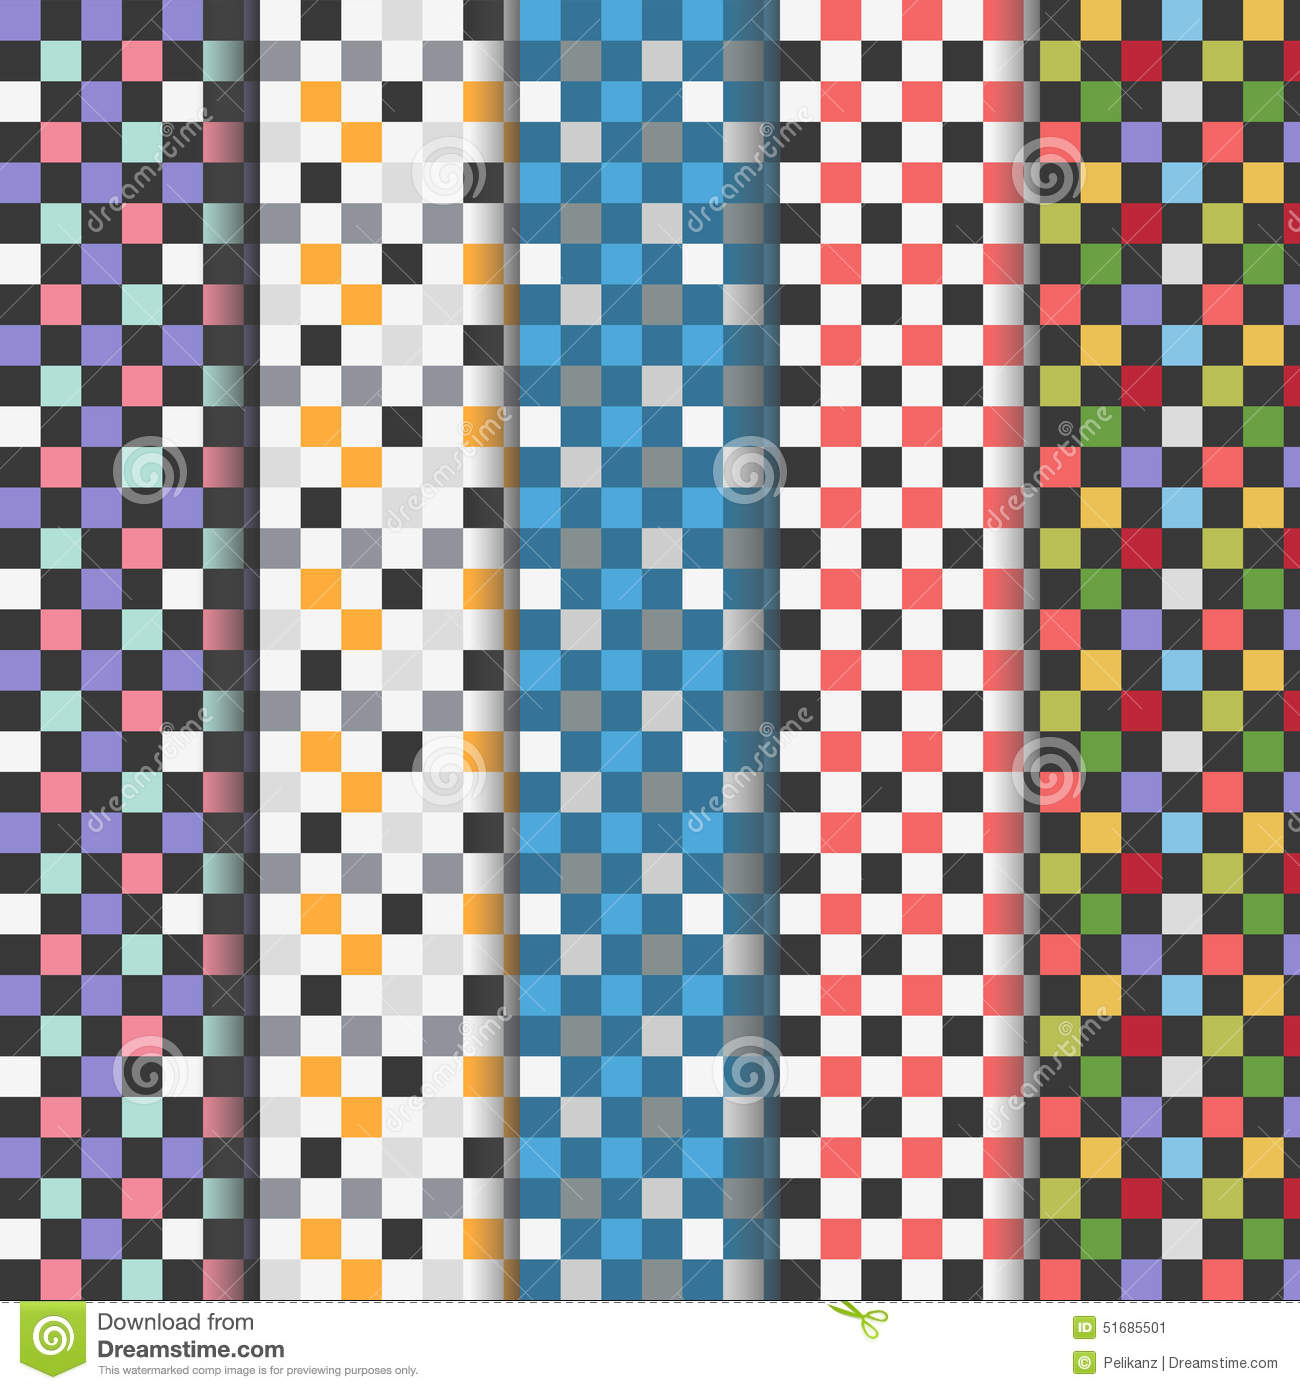 Set of checkered patterns vector illustration for Imagenes de cuadros abstractos famosos